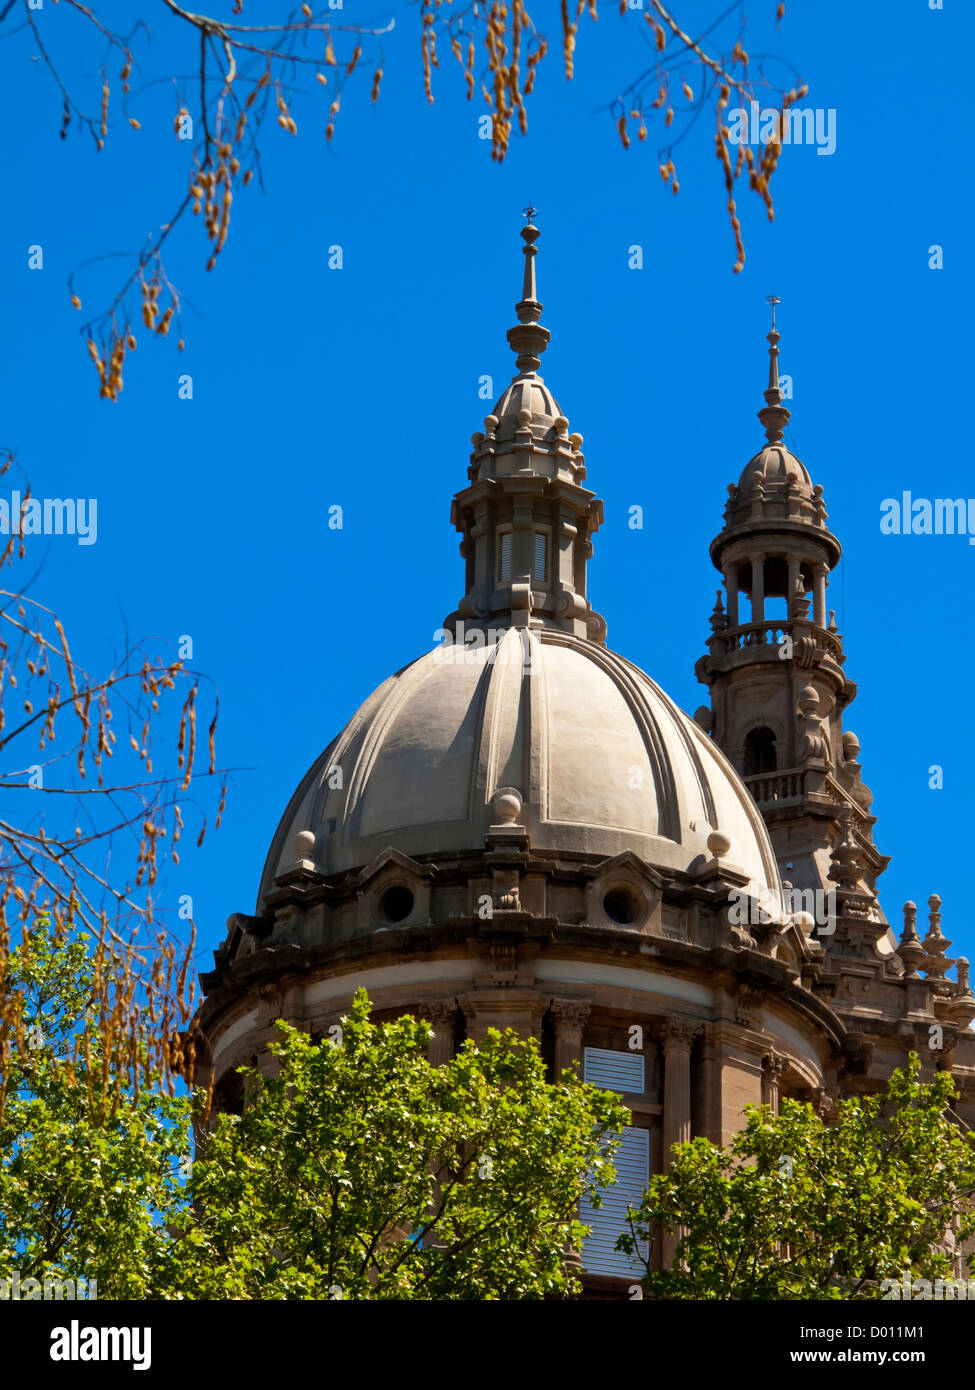 View of dome of MNAC museum and art gallery at Montjuic in Barcelona city centre Catalonia Spain - Stock Image